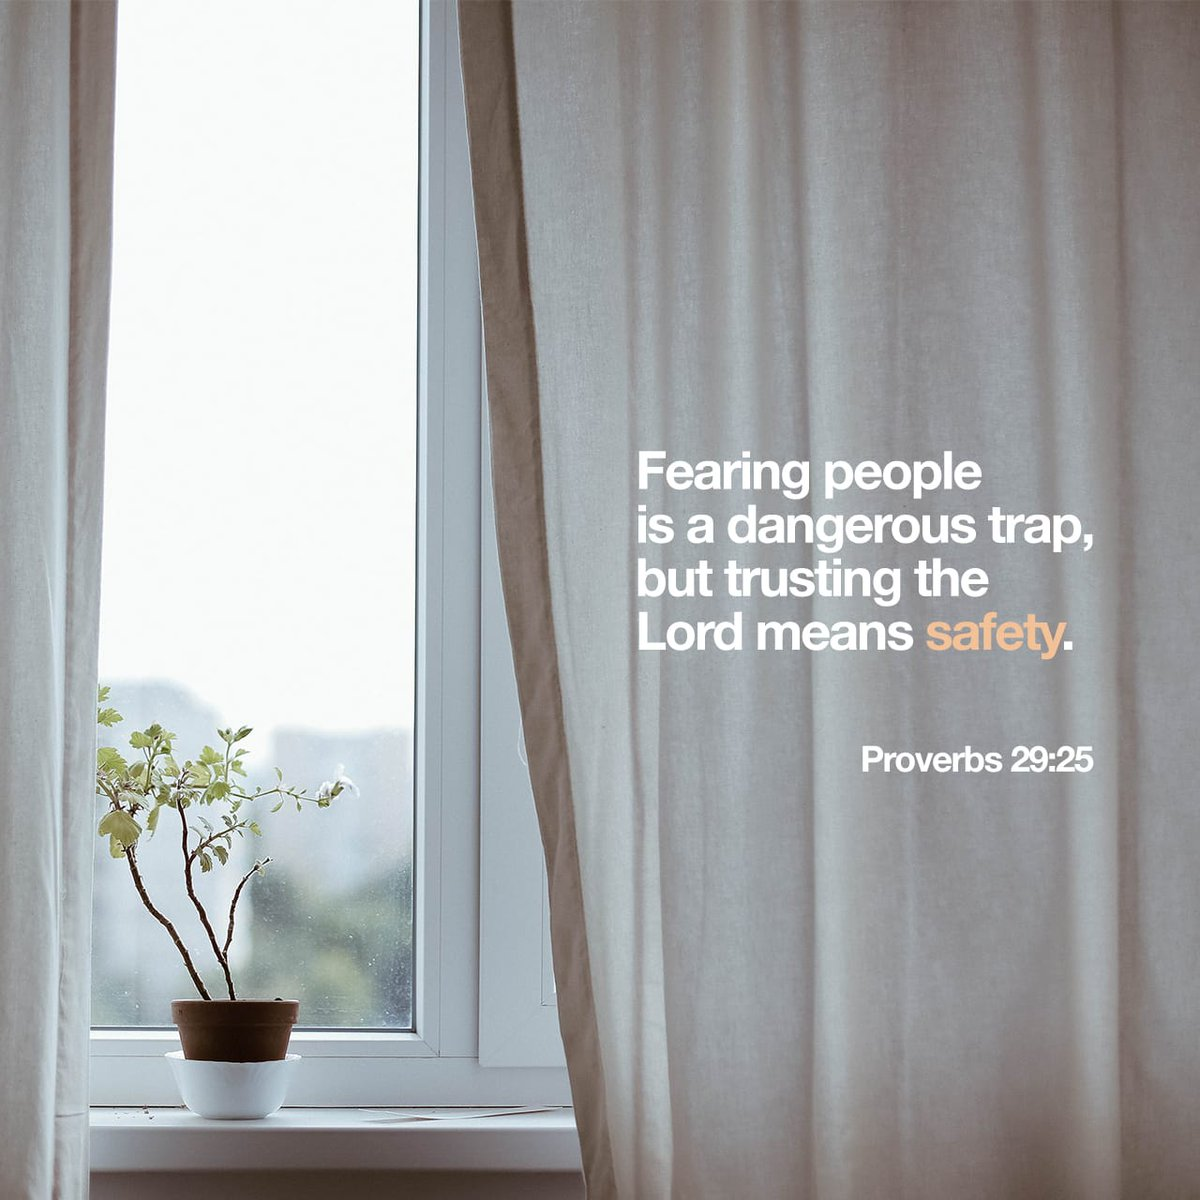 @YouVersion's photo on Proverbs